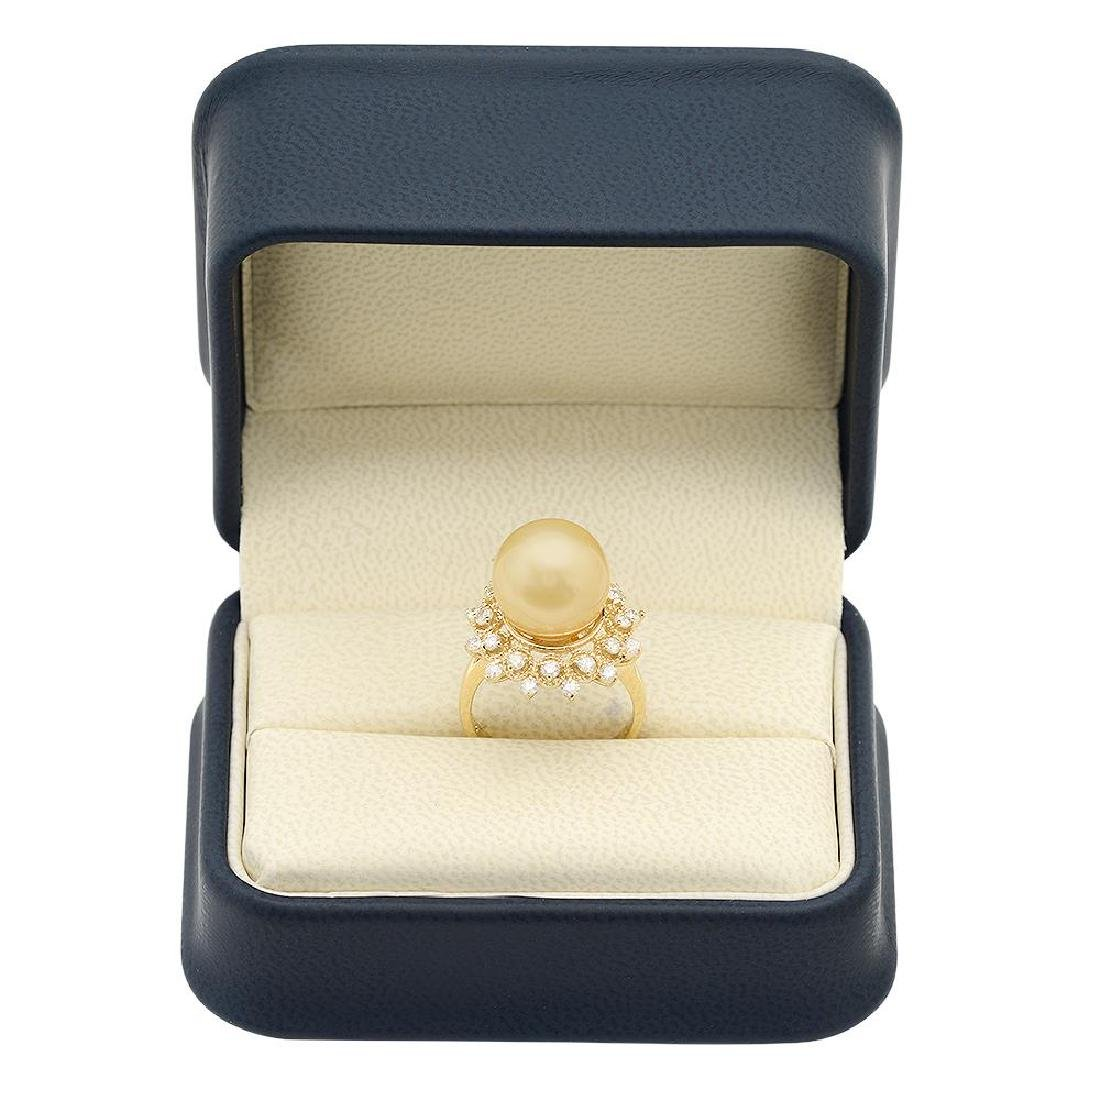 14K Gold 12mm Pearl 0.77cts Diamond Ring - 4